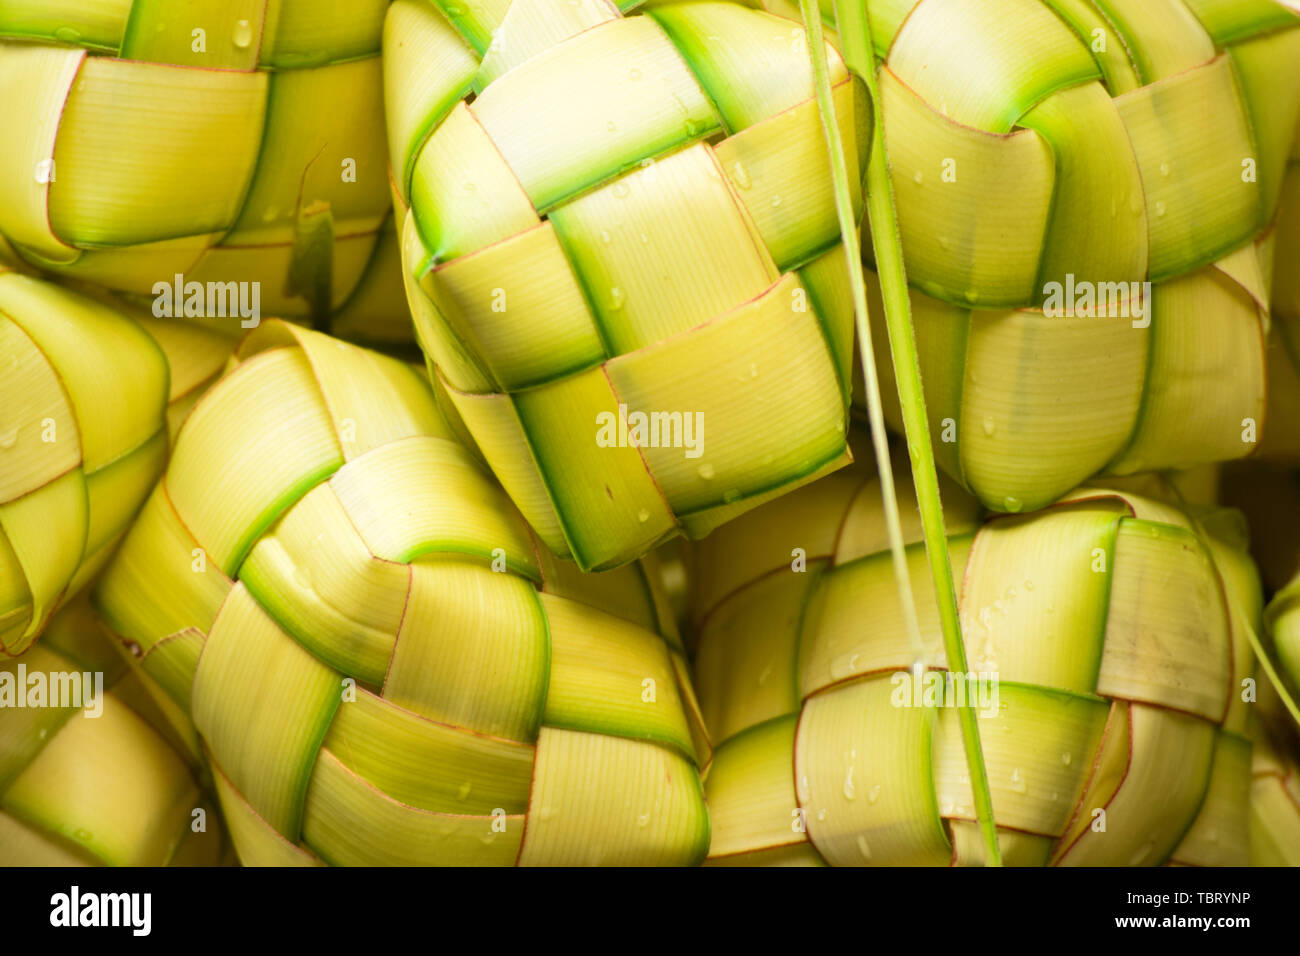 Ketupat 'asian rice dumpling'. Ketupat is a natural rice casing made from young coconut leaves for cooking rice during eid Mubarak Eid ul Fitr - Stock Image